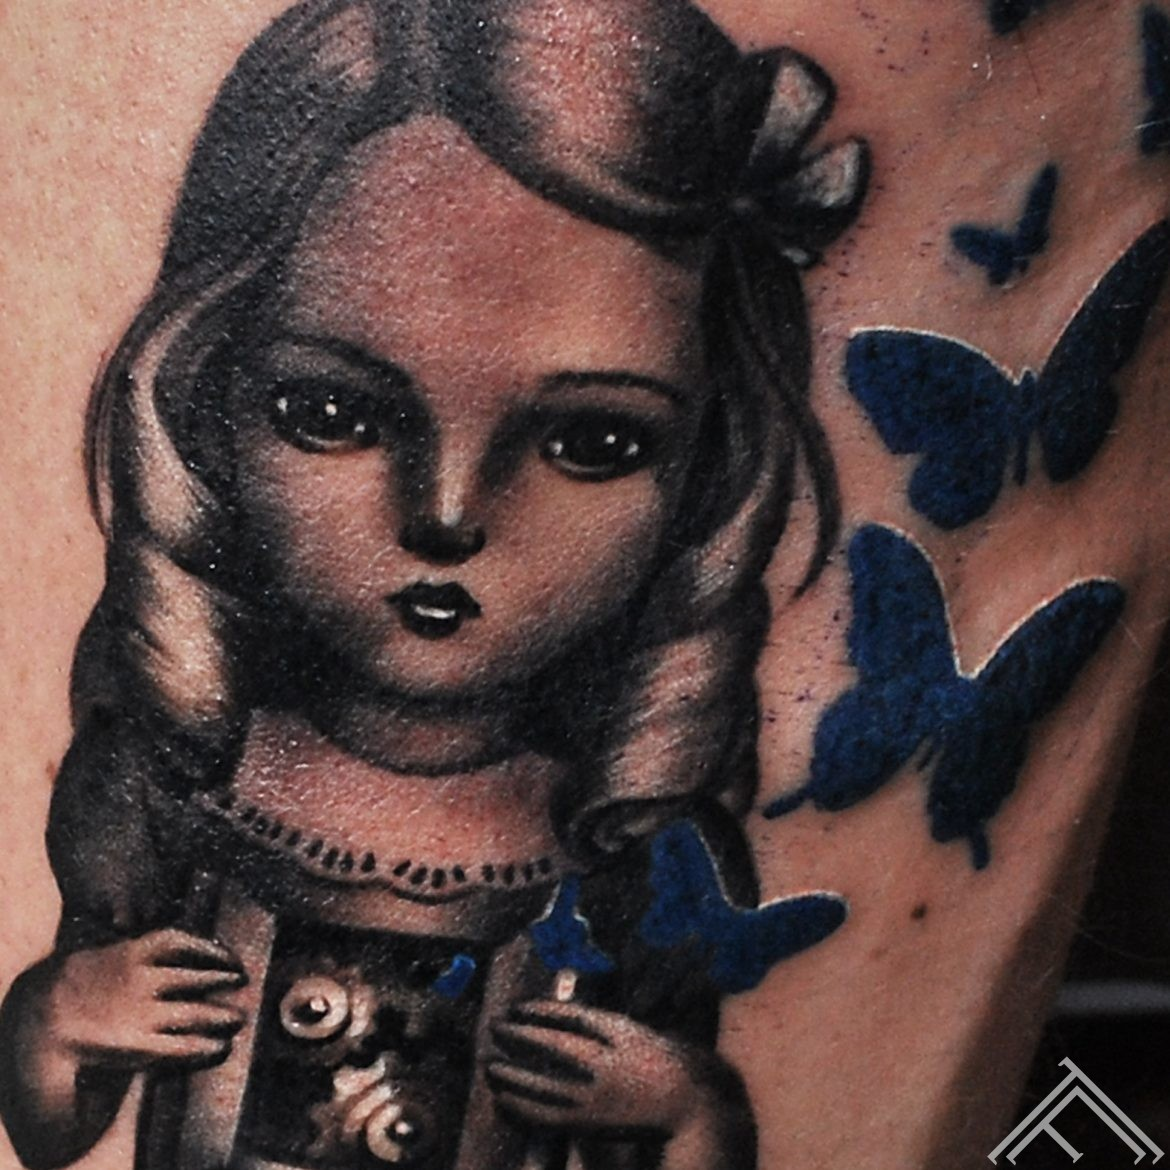 girl-dool-tattoo-tattoofrequency-butterfly-martinssilins-riga-closeup